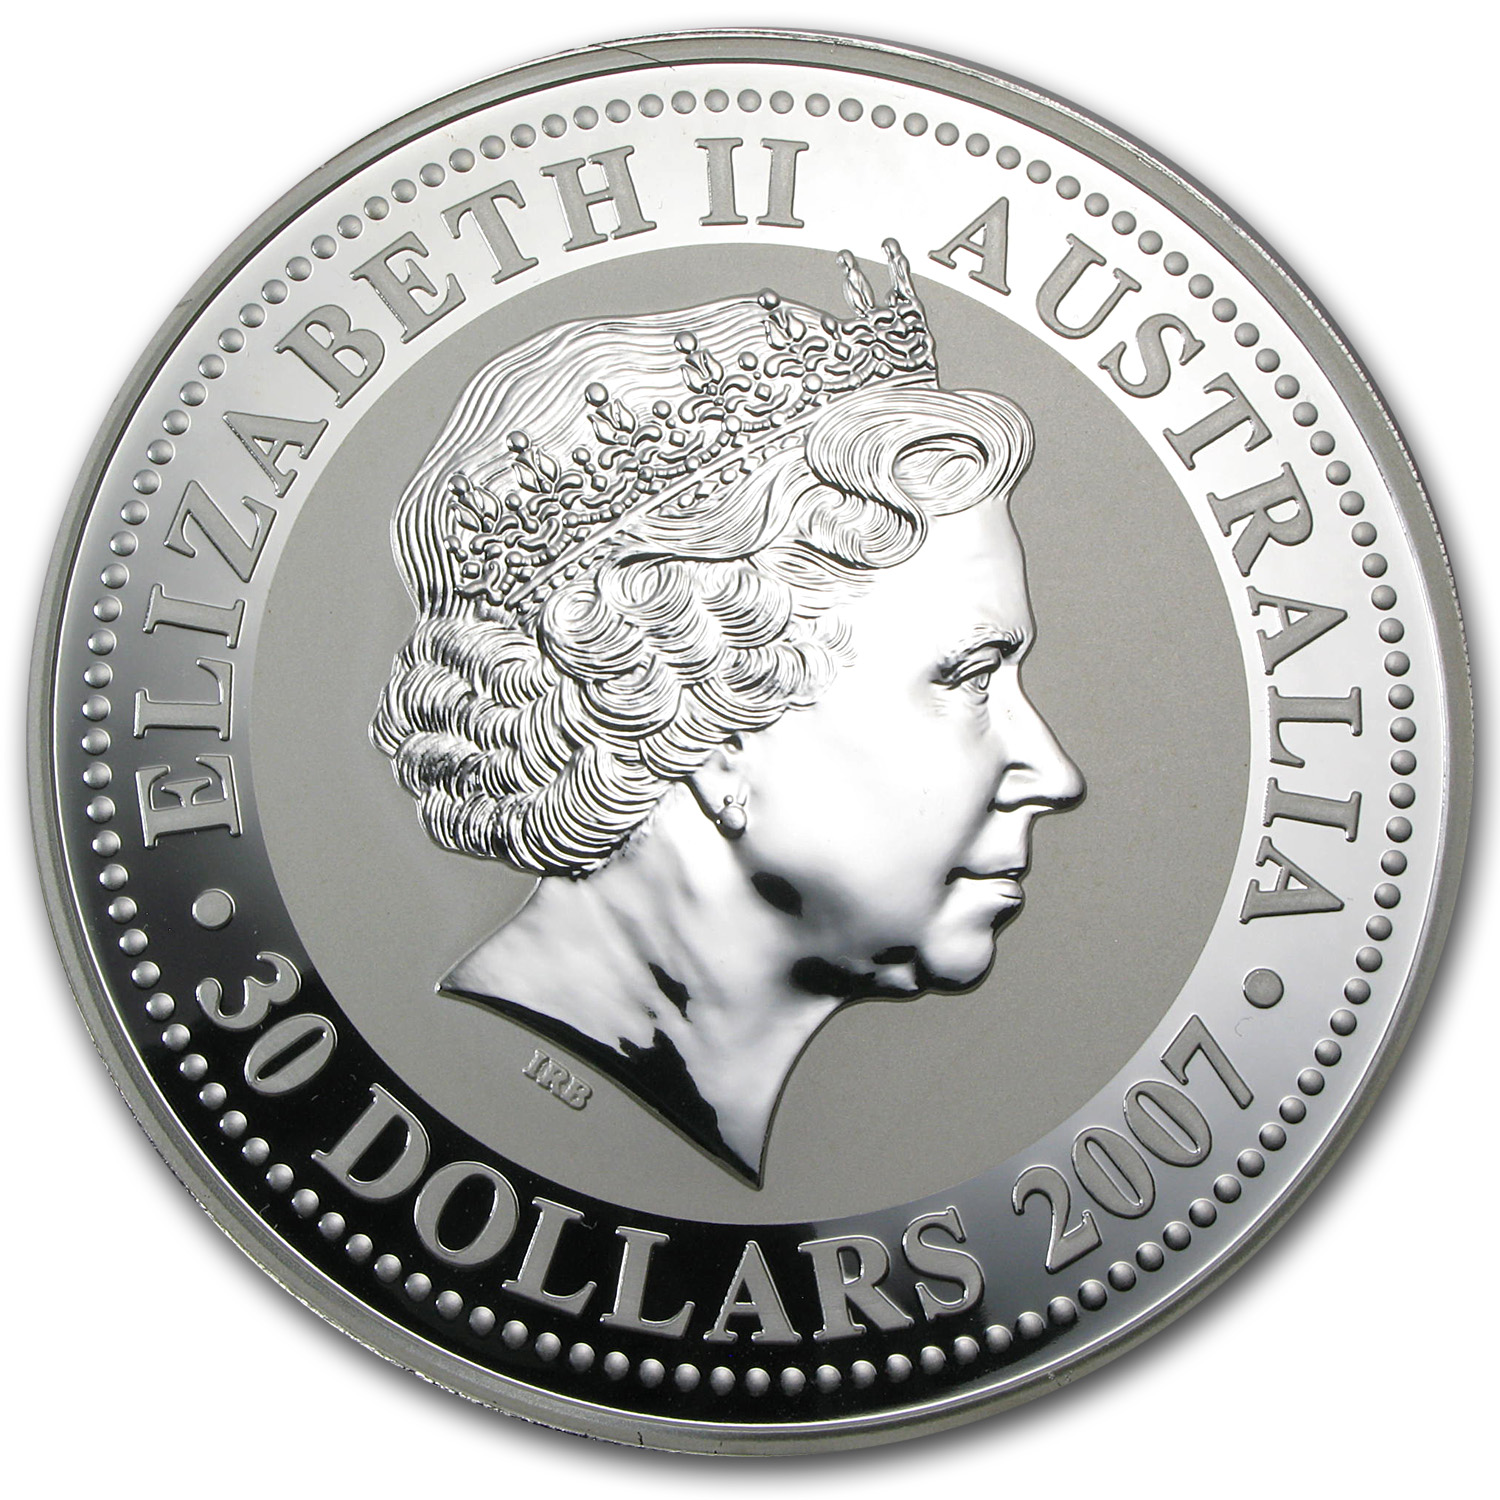 2009 1 kilo Silver Australian Year of the Ox BU (Series I)